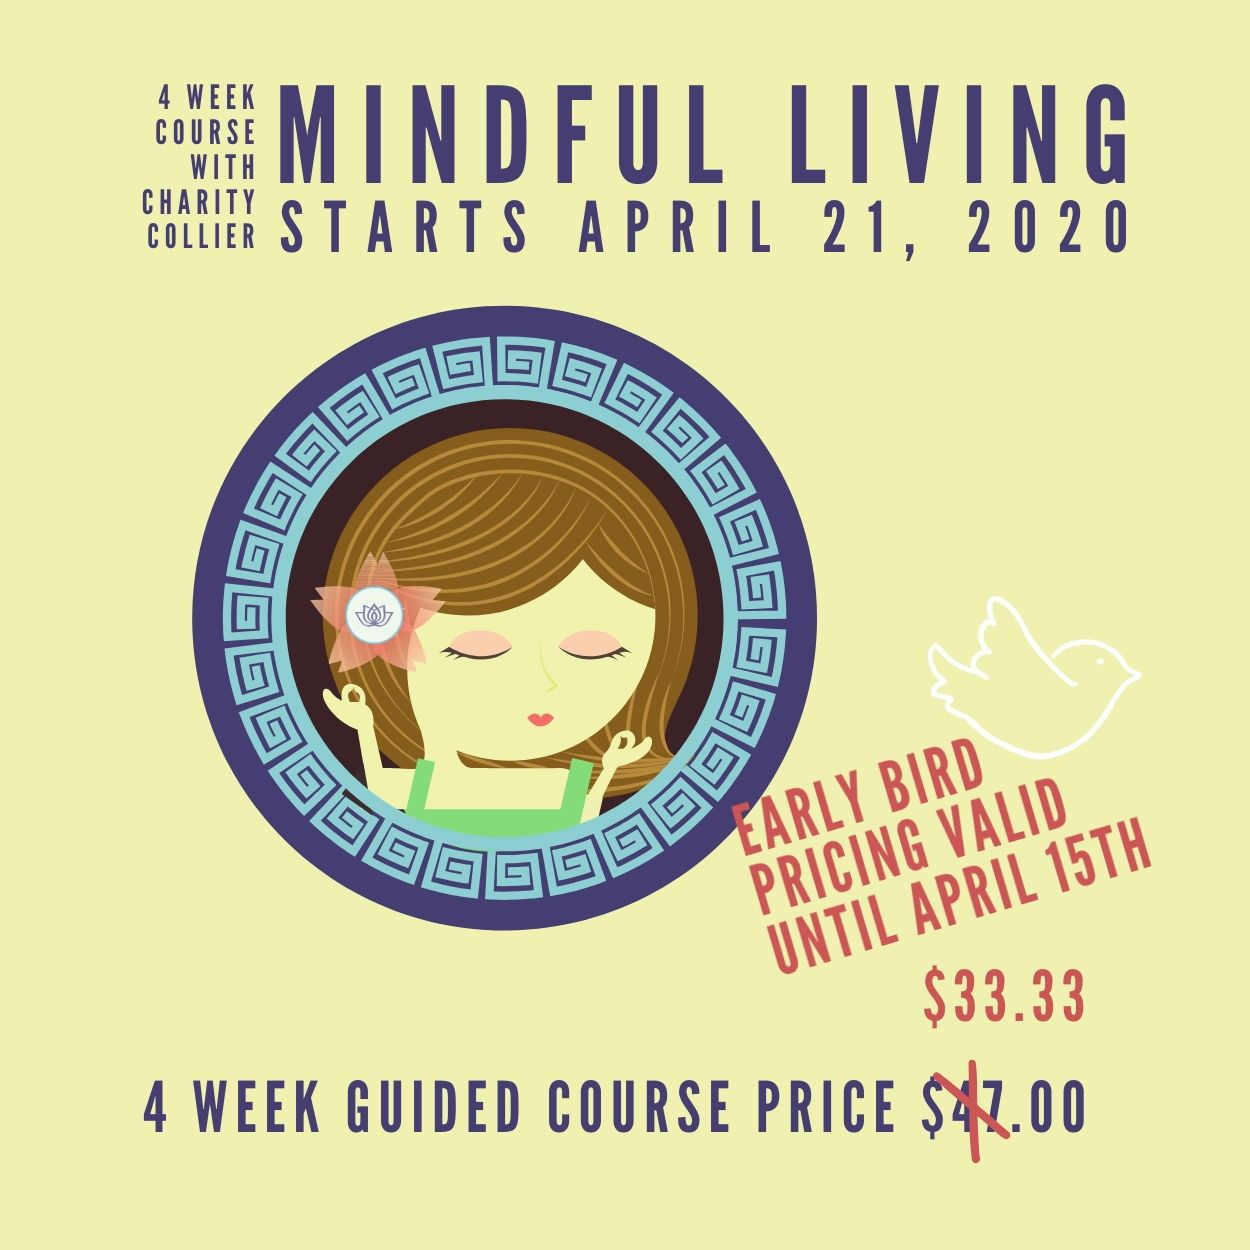 Mindful Living Course In